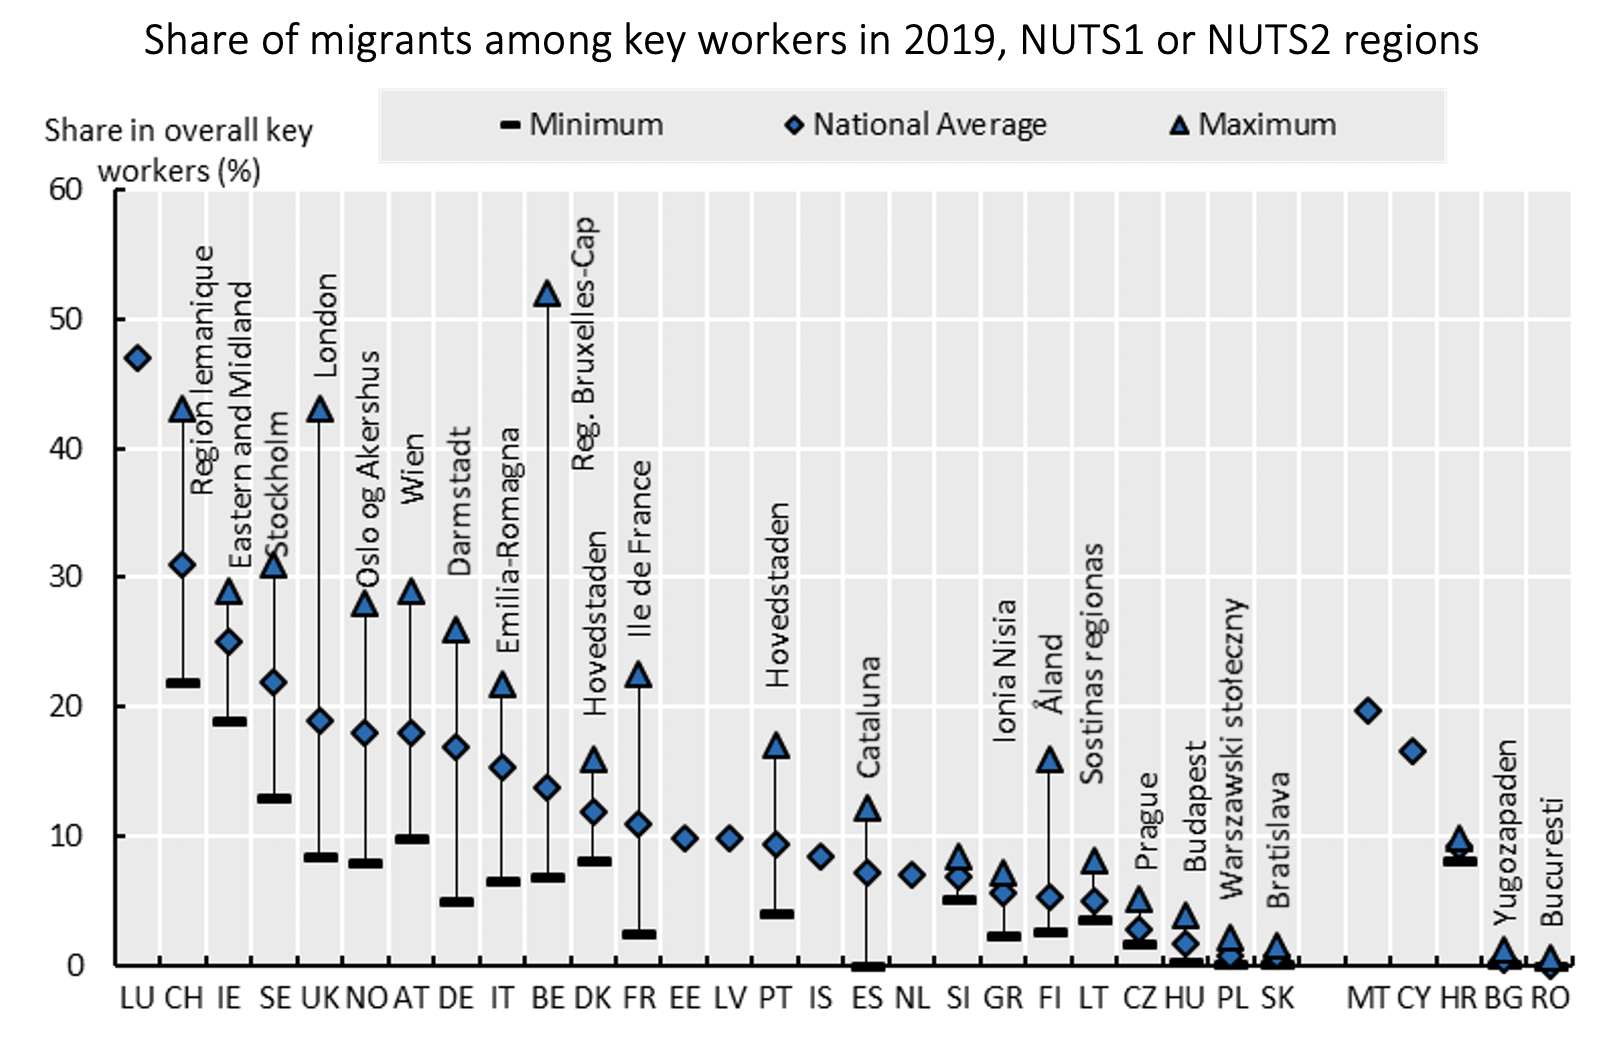 COVID-19 and key workers: The role of migrants across regions and cities 2